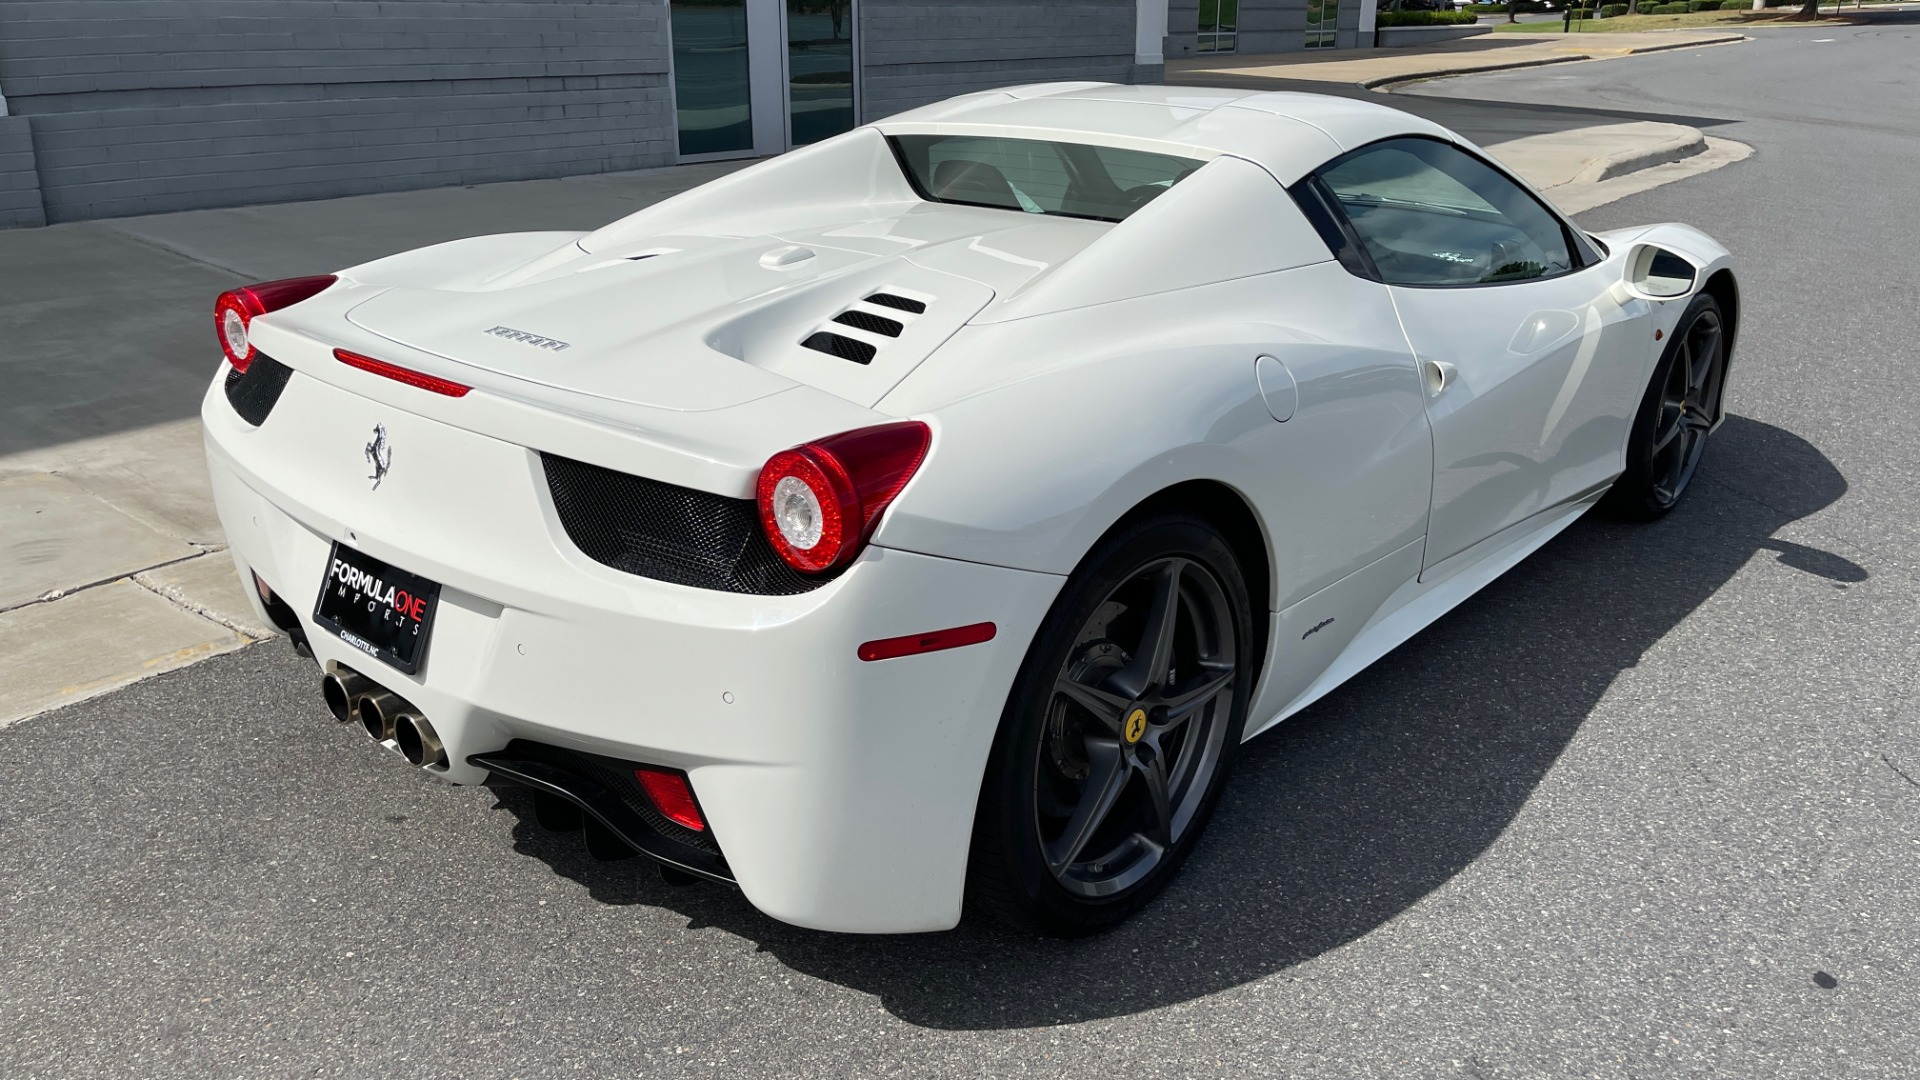 Used 2014 Ferrari 458 ITALIA SPIDER 570HP / F1 AUTO / CF SEATS / CARBON BRAKES / REARVIEW for sale $249,999 at Formula Imports in Charlotte NC 28227 6